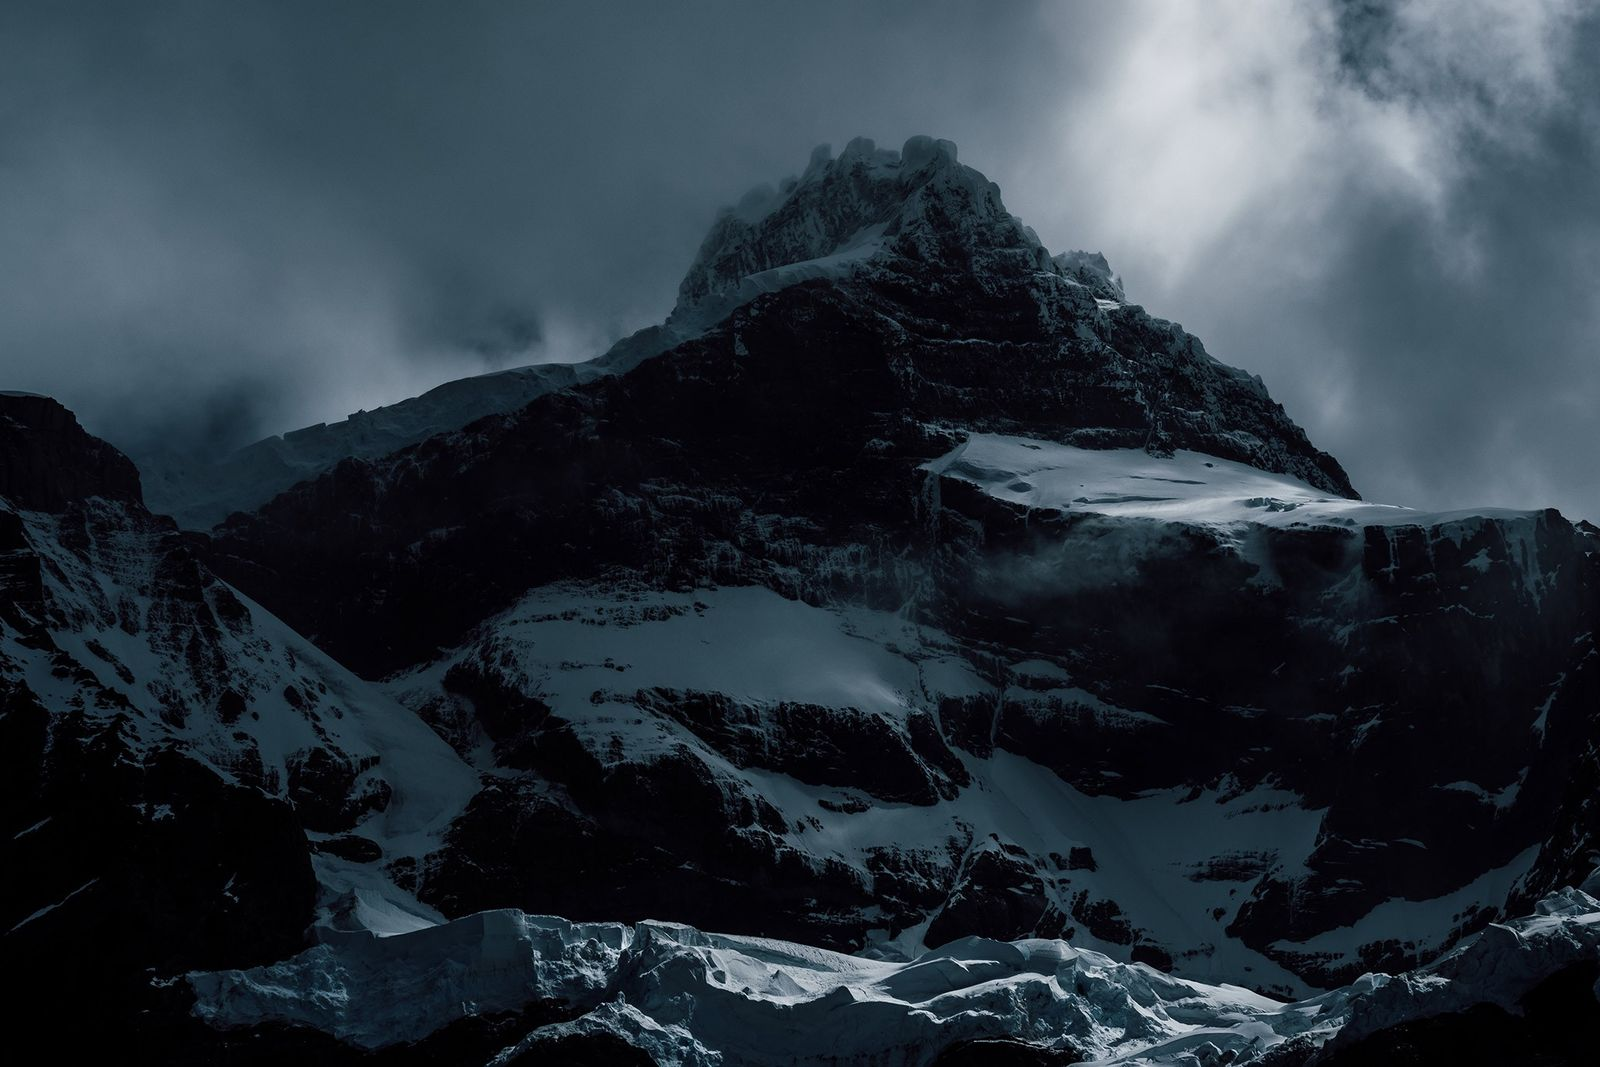 Magnificent Moody Photos of South America's Wonders